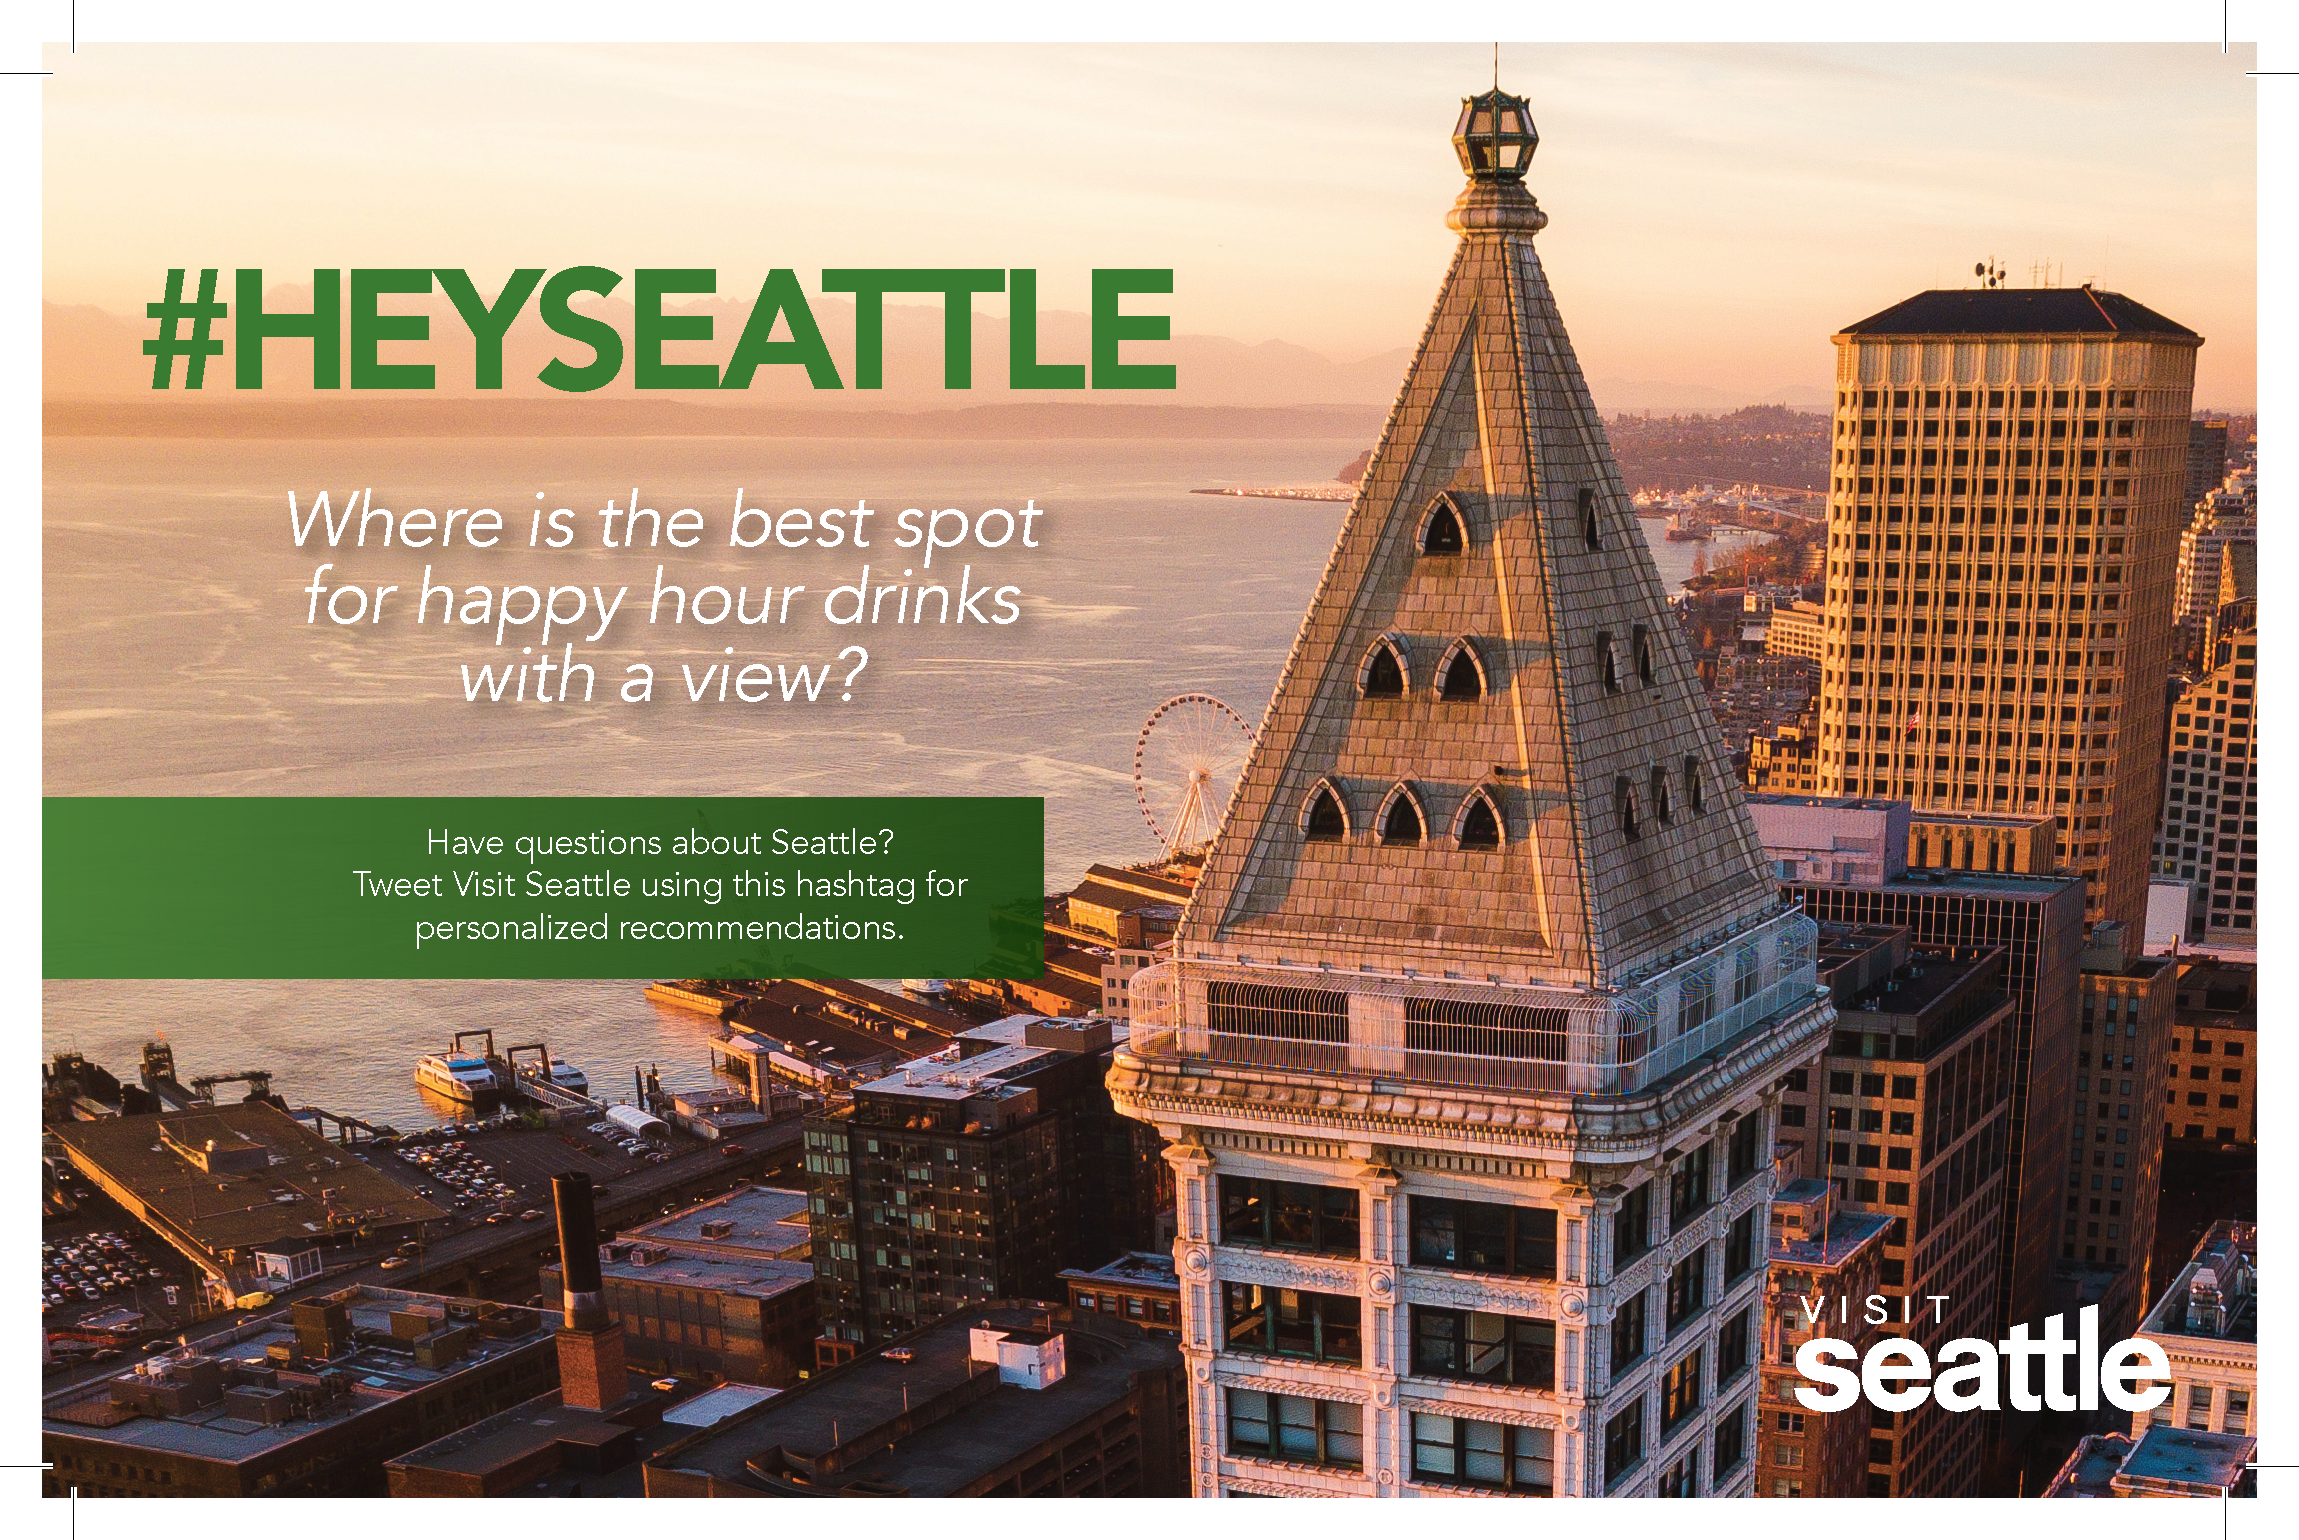 VisitSeattle-ad_Bassett2_Page_2.png